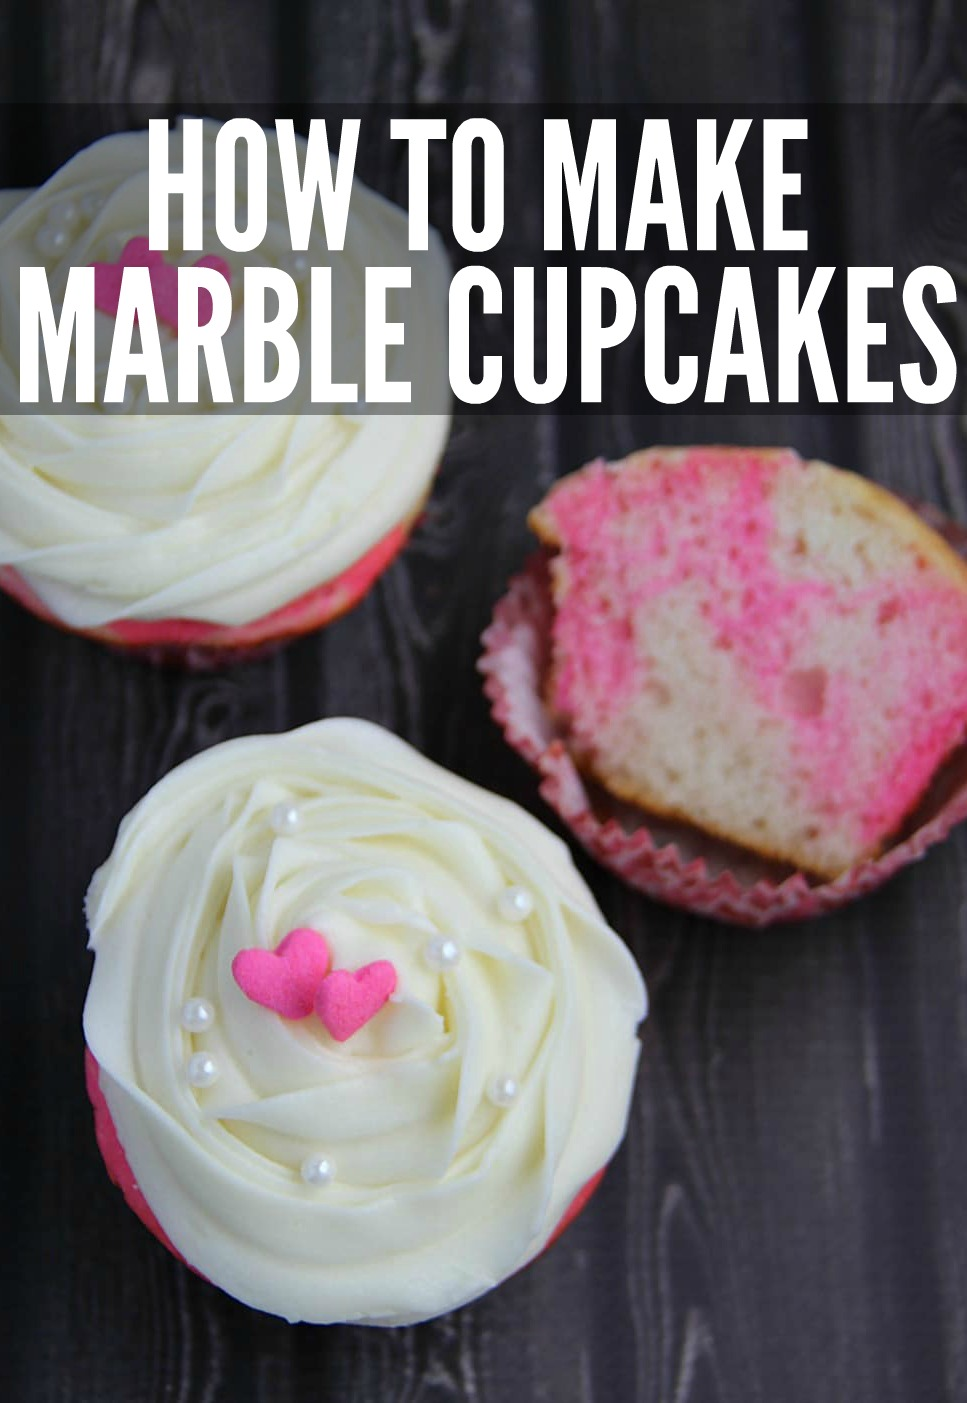 How to Make Marble Cupcakes